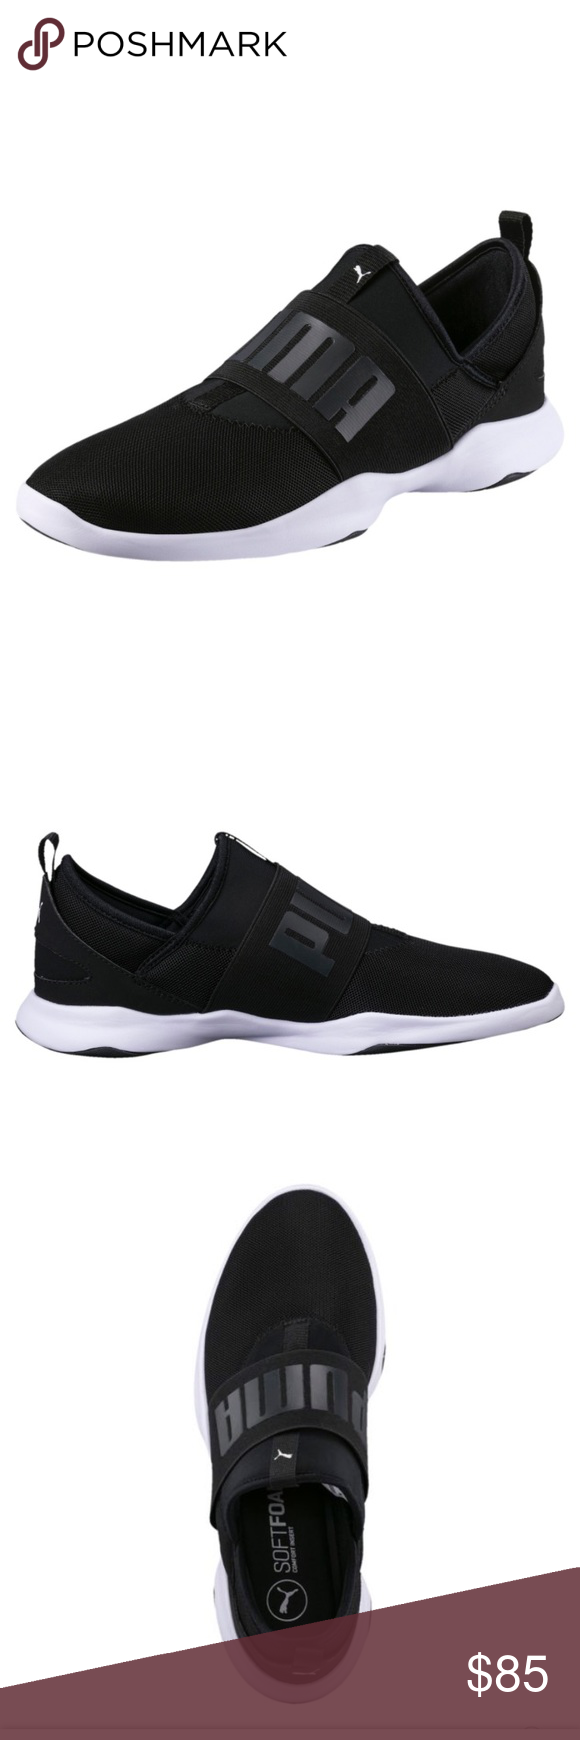 6a36b3c7c556 Womens Black   White Puma Mesh Slip on -Perfectly brand new puma soft foam  comfort insert slip on . -Perfect for Running or a casual day. Smoke free  home .